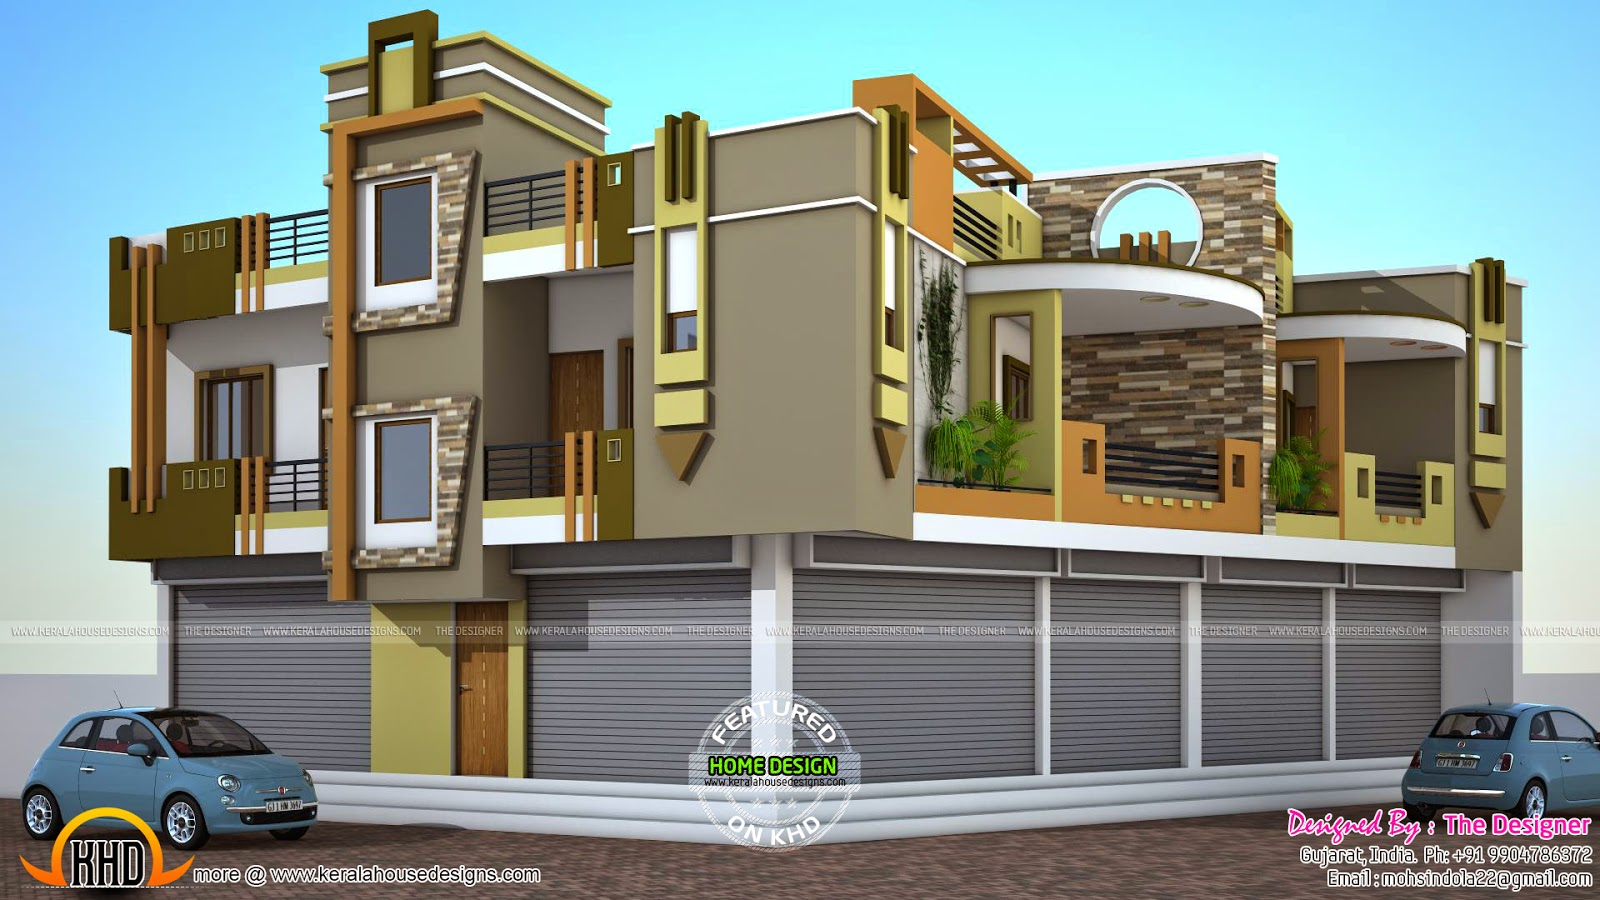 2 house plans with shops on ground floor kerala home for Ground floor house design